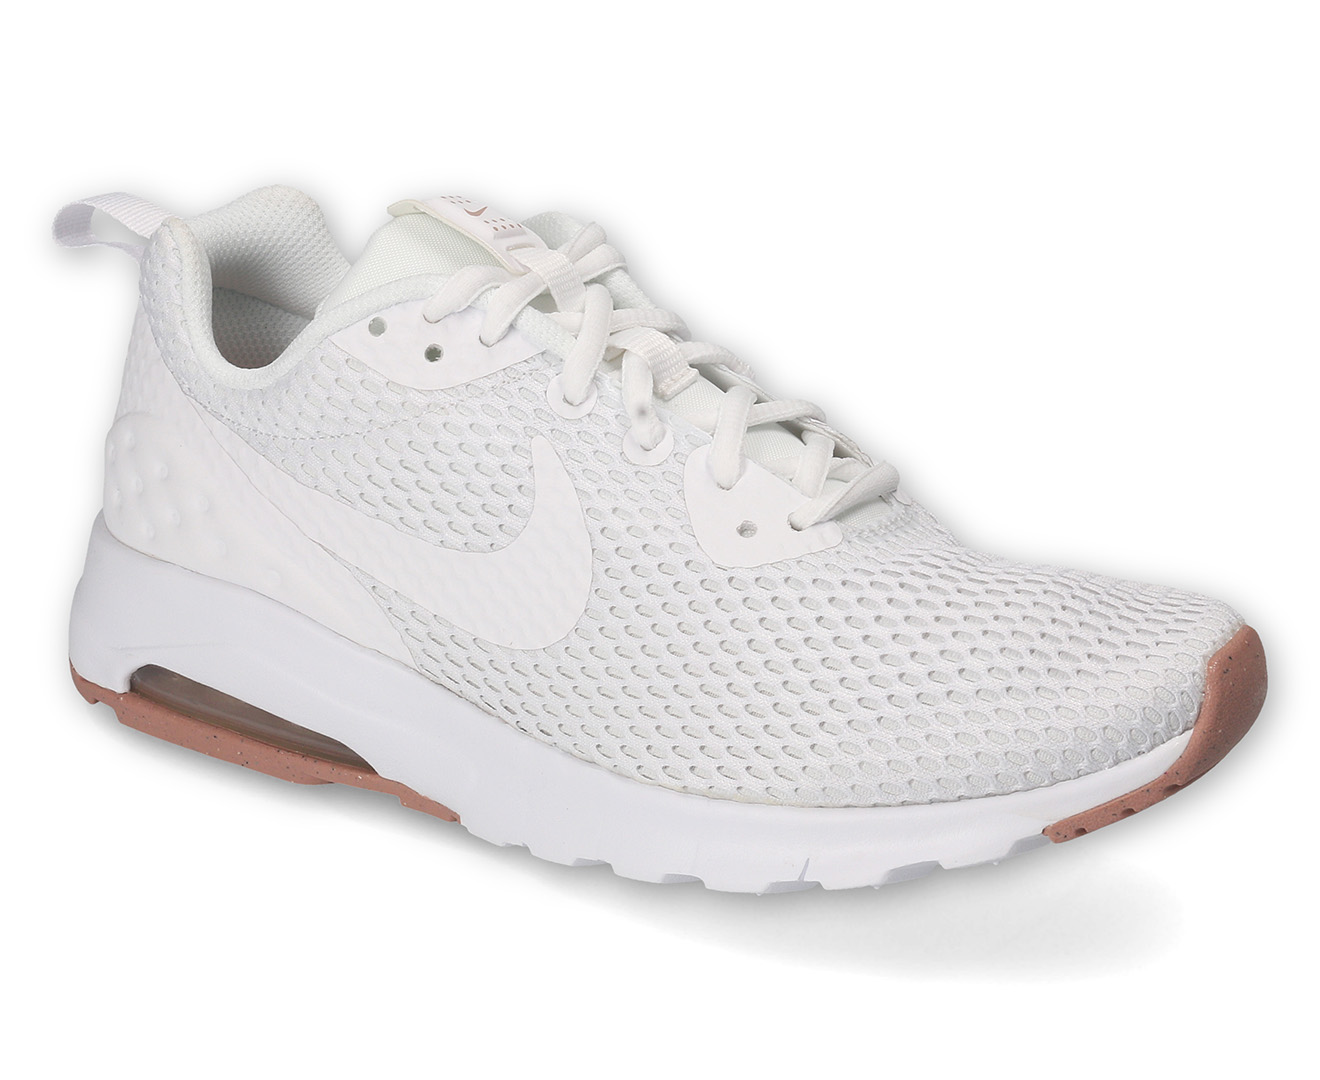 17d7f95053531 Nike Women s Air Max Motion LW BR Shoe - White White-Particle Pink ...